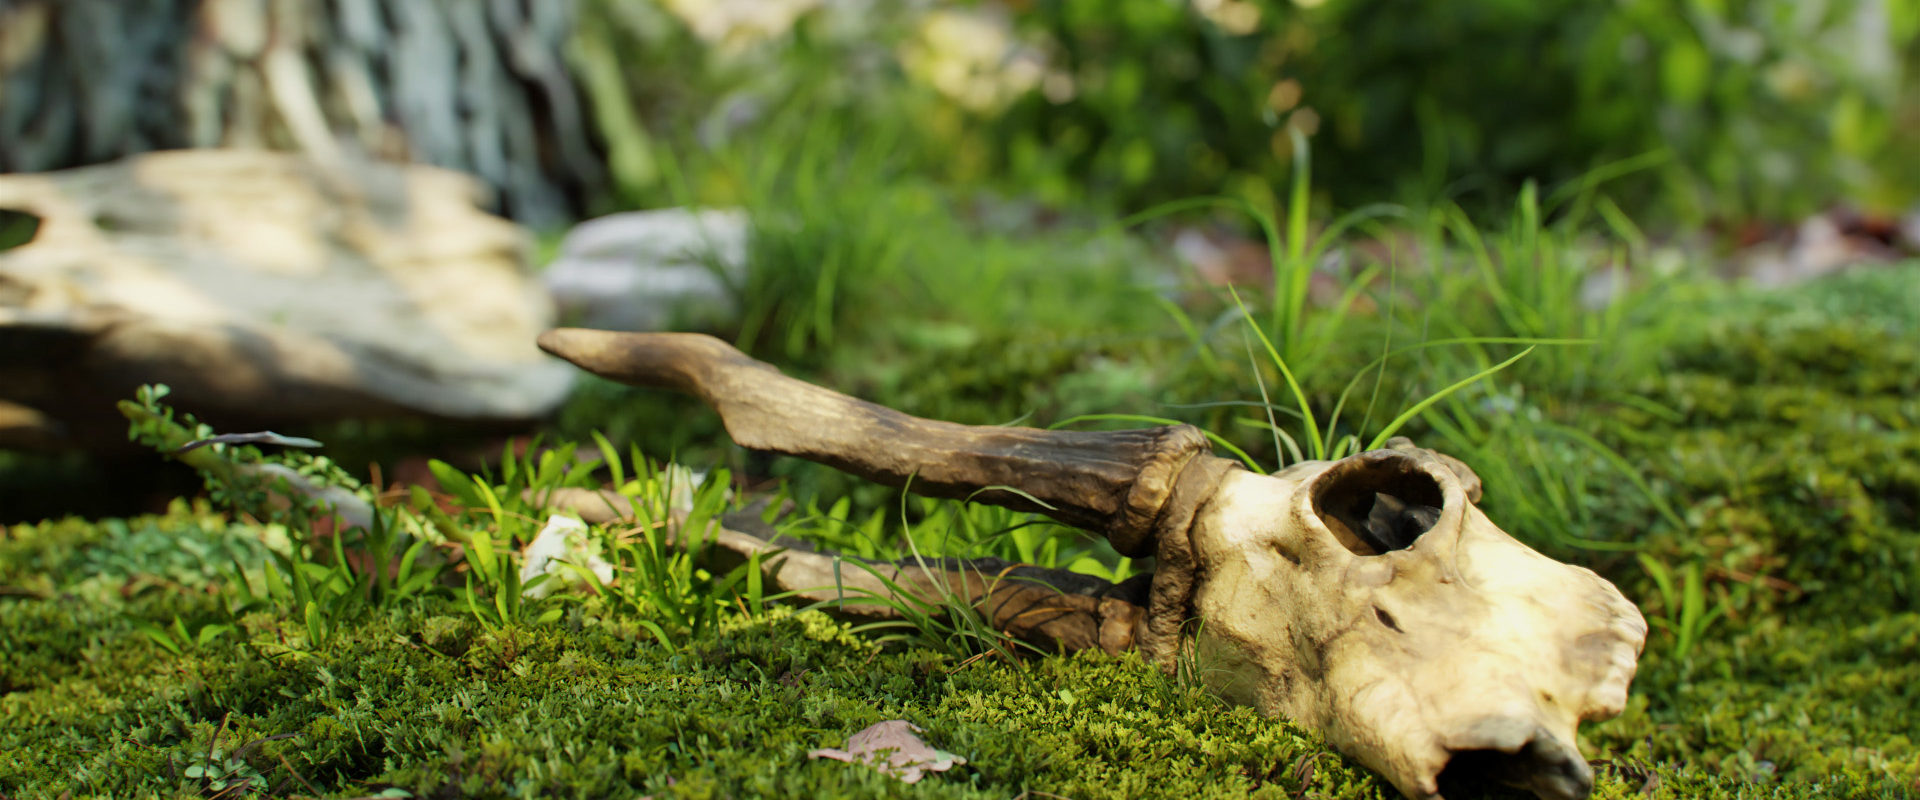 Goat_skull_with_antlers_9_13_